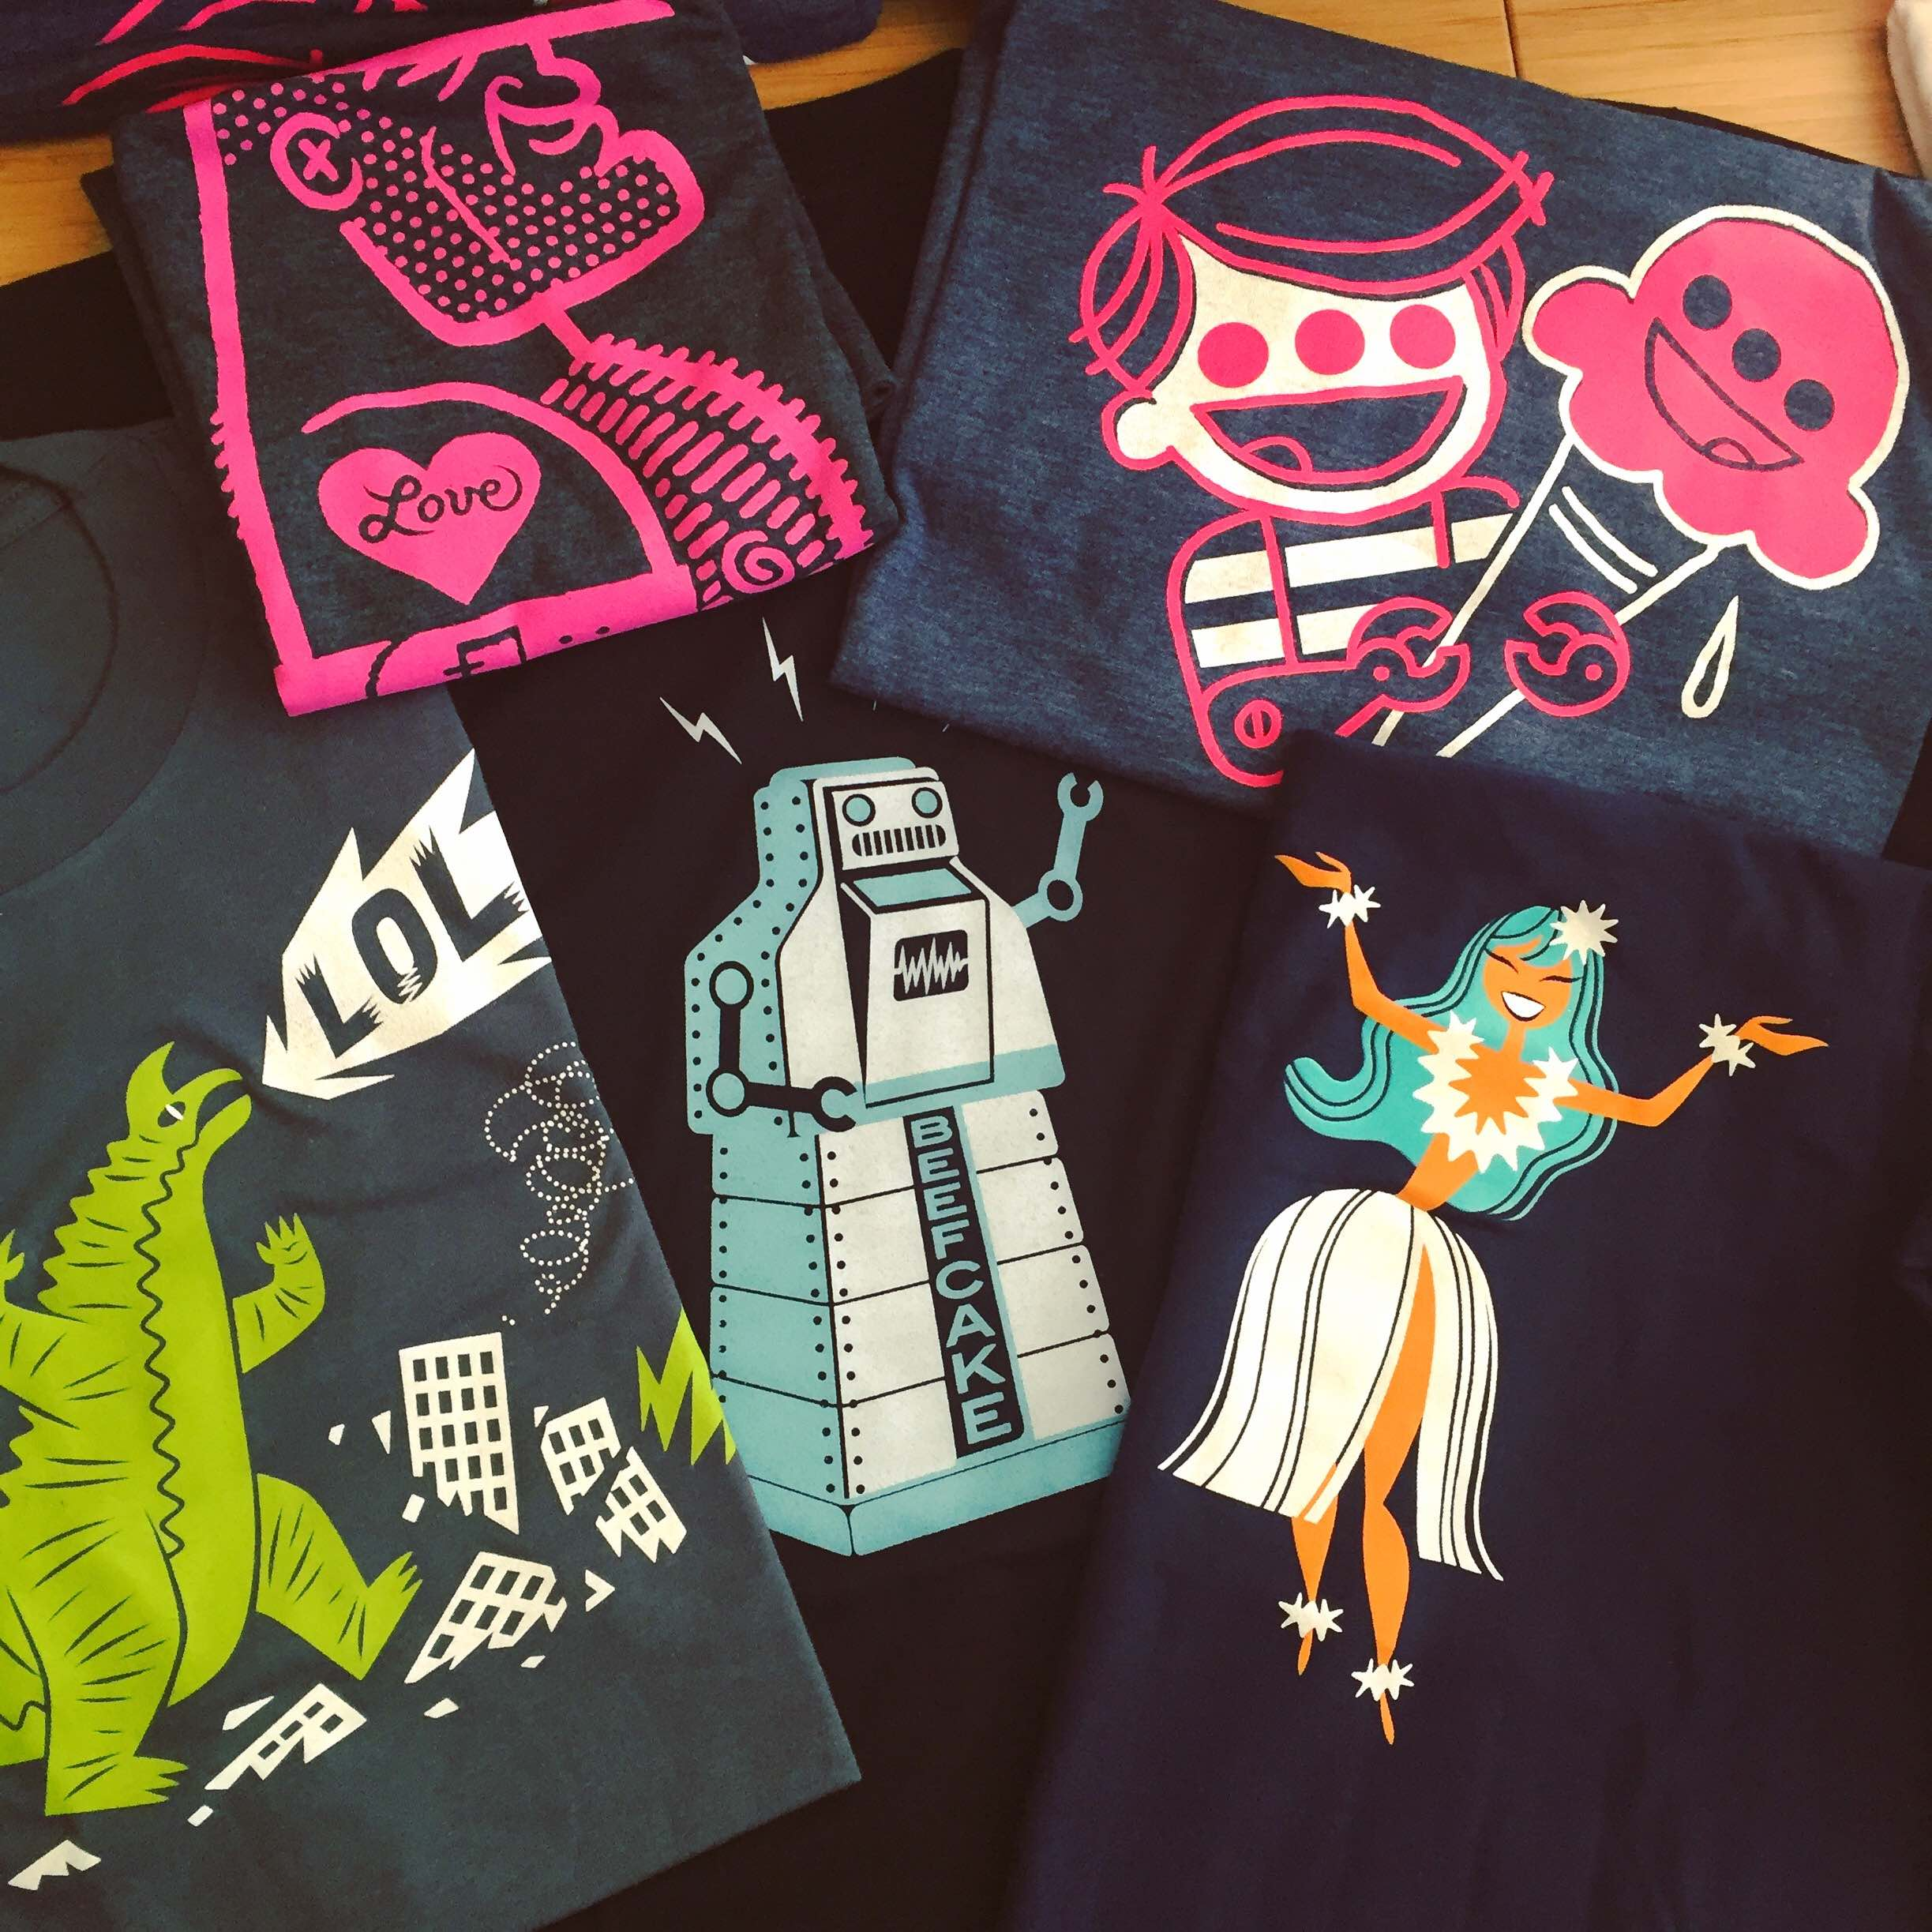 "Five printed black t-shirts are on a table. One has an image of a large robot on it, another has a bot with three eyes eating ice-cream, one shows Godzilla destroying a city with ""LOL'' in a soeech bubble, one shows a burly man with a heart tattoo on his arm and the last one shows a lady in a white dress with her arms raised"""